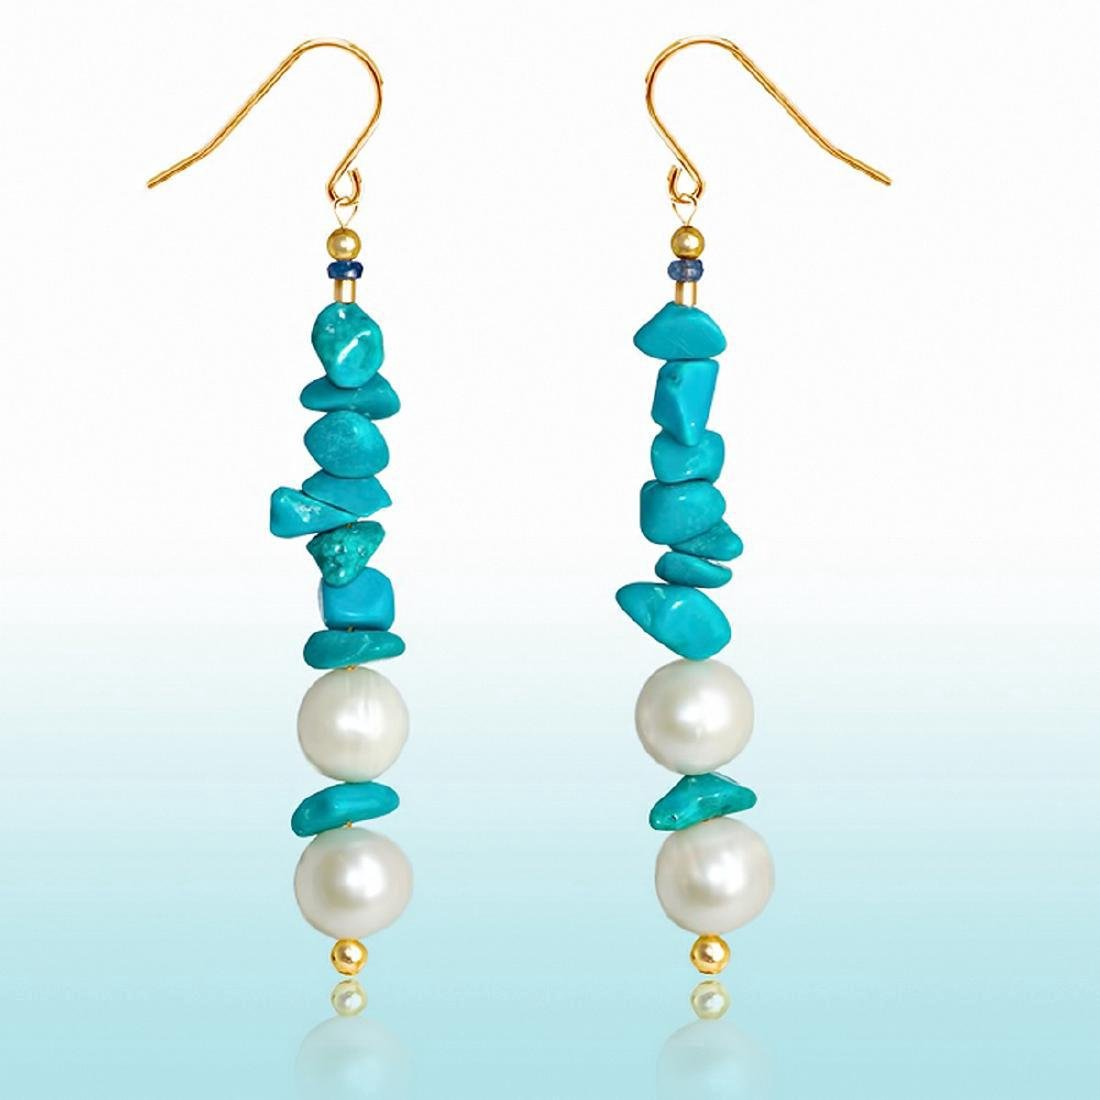 14K Gold Persian Turquoise Pearl Sapphire Earrings